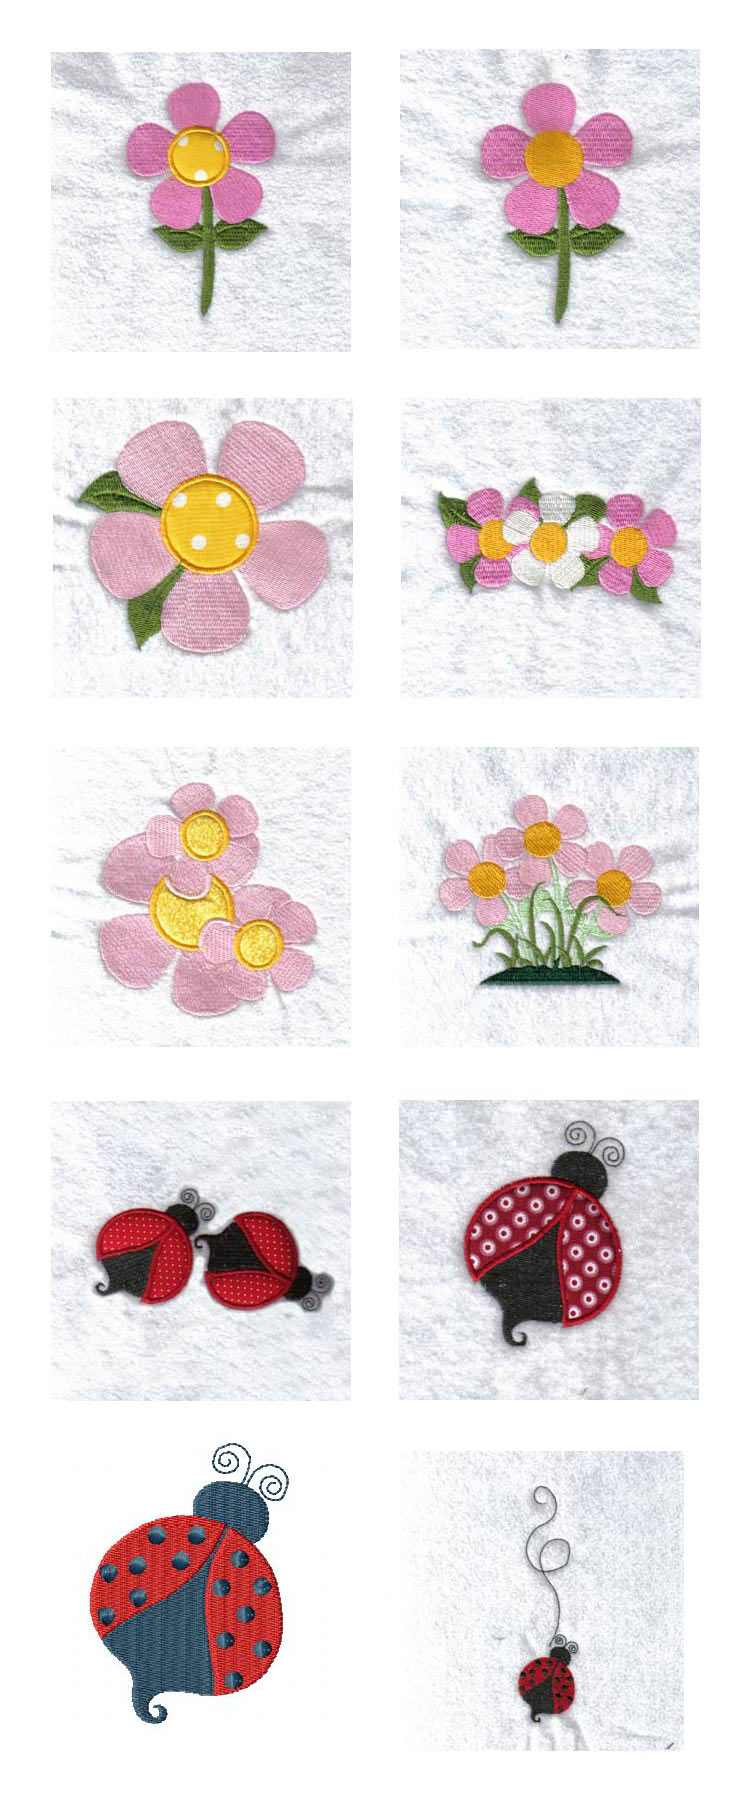 Burst of Spring Windsock Embroidery Machine Design Details